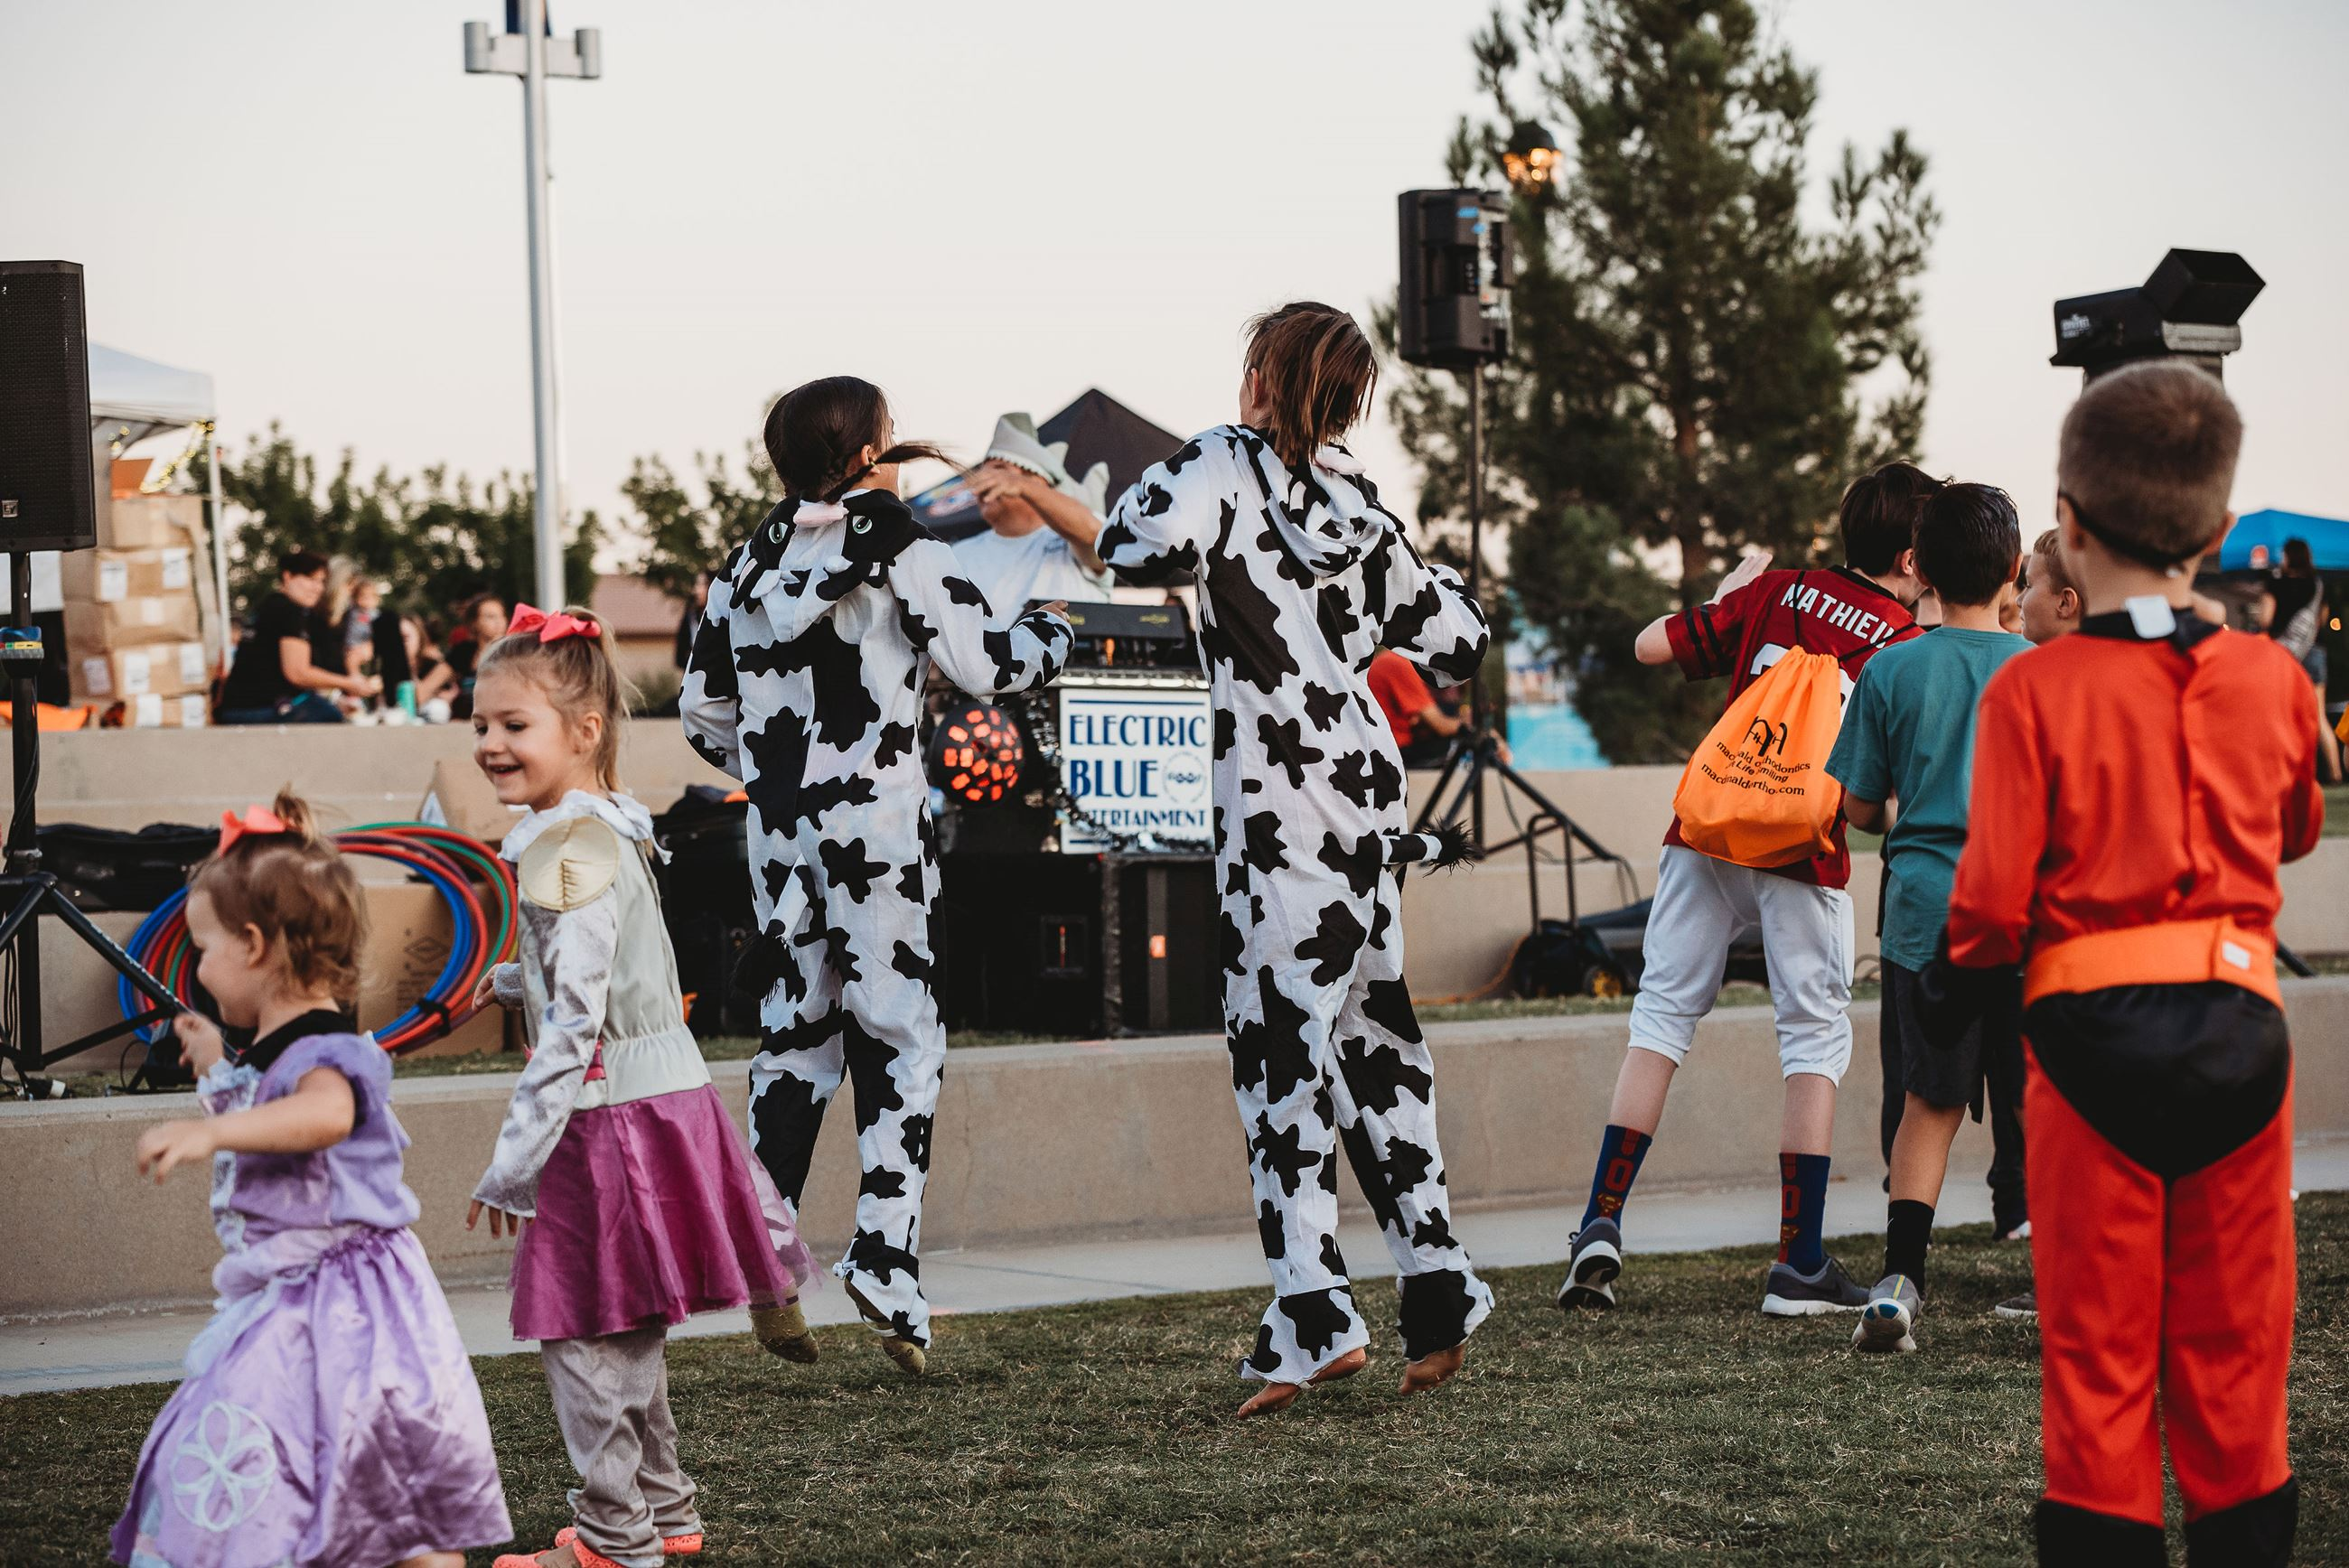 Two People Wearing Cow Onsies Jump Together at a Dance Scene